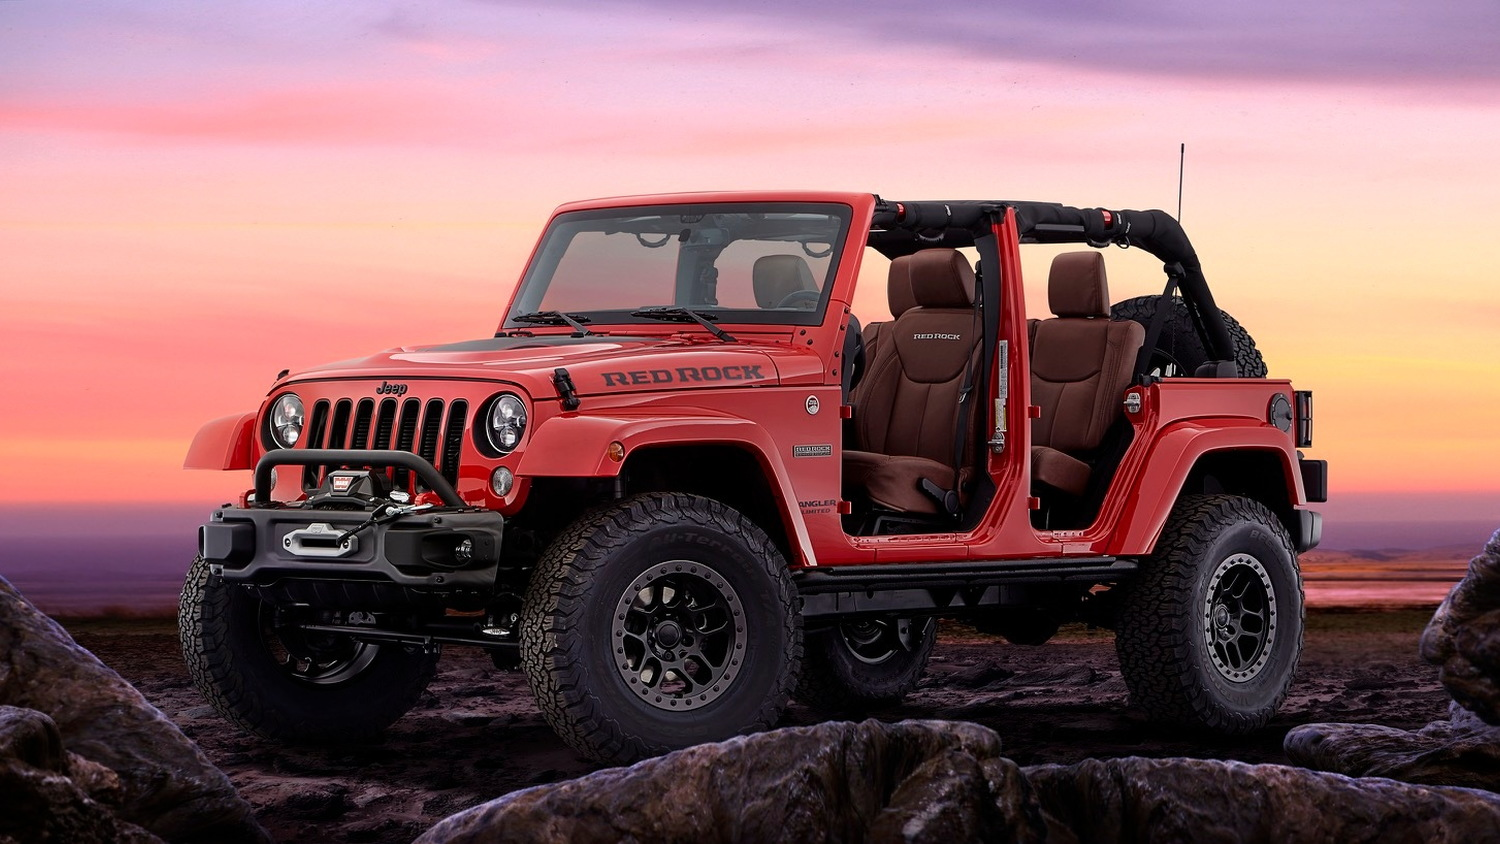 Jeep Wrangler Red Rock concept, 2015 SEMA show